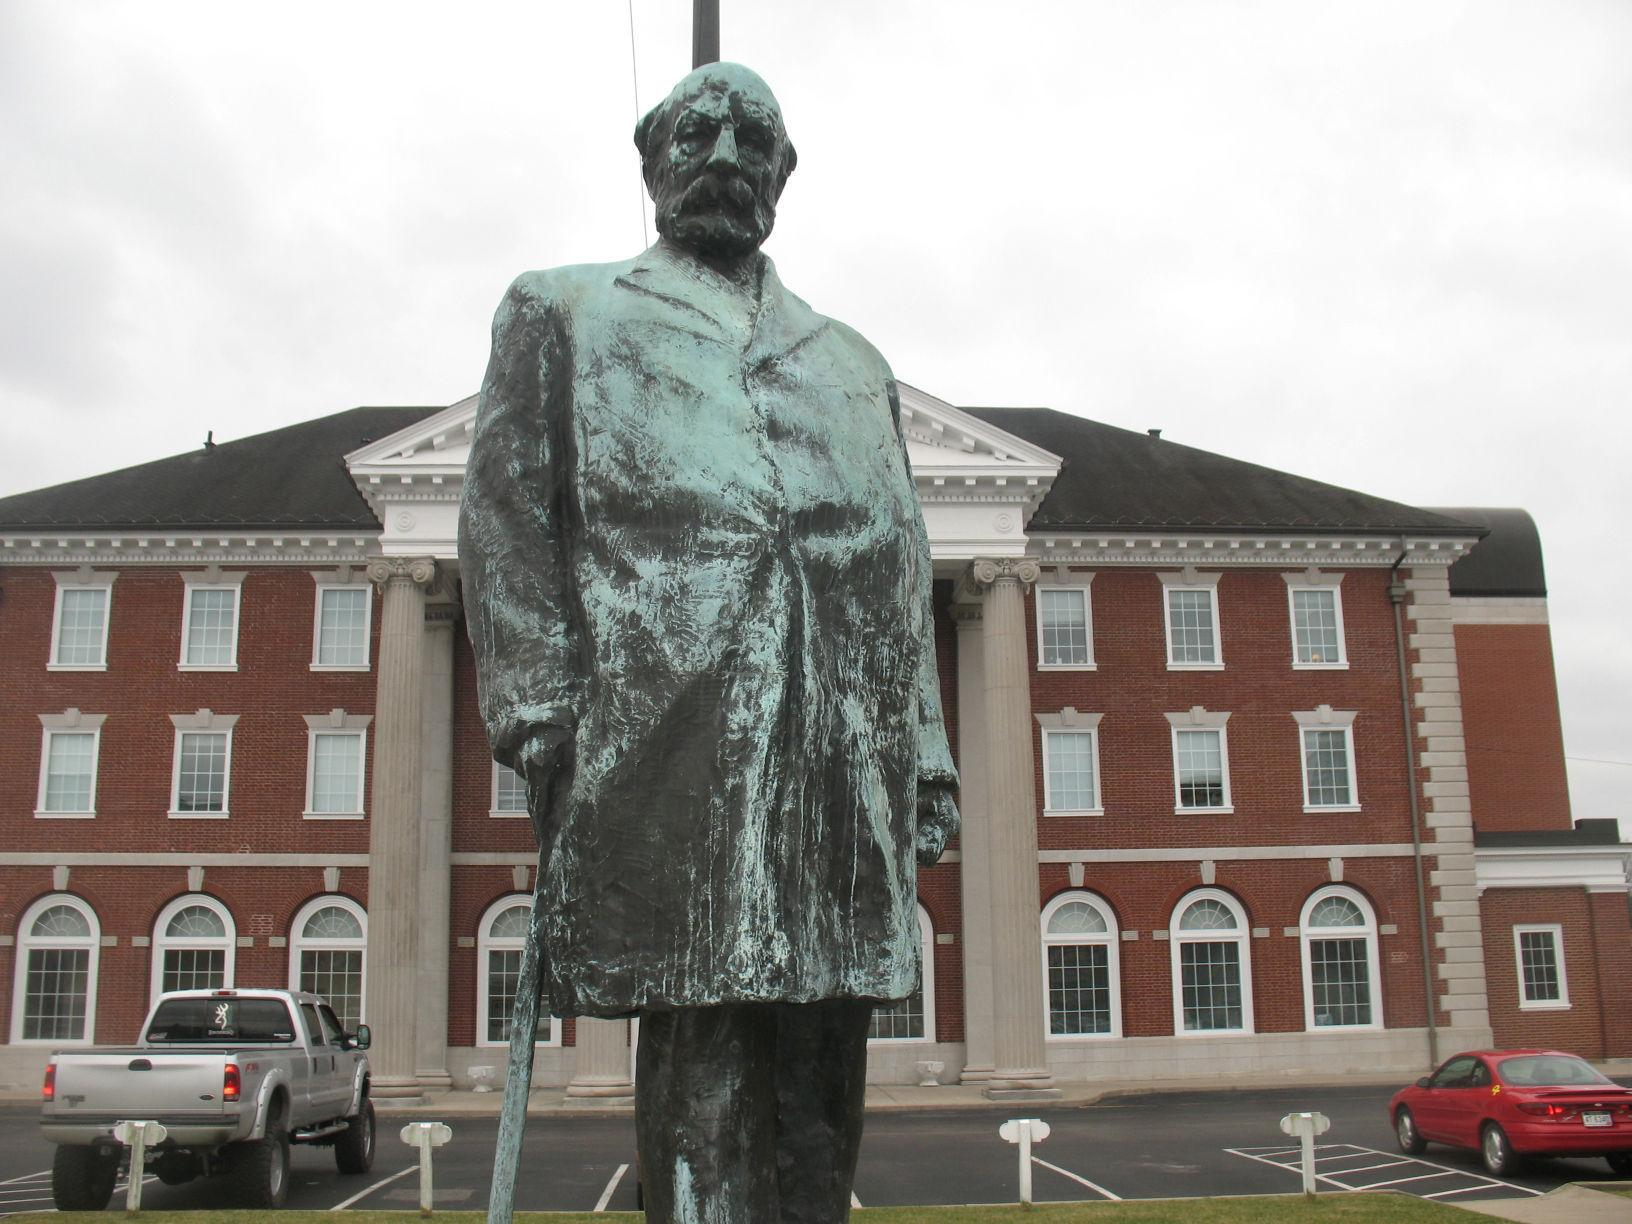 A closer view of the statue in front of the station